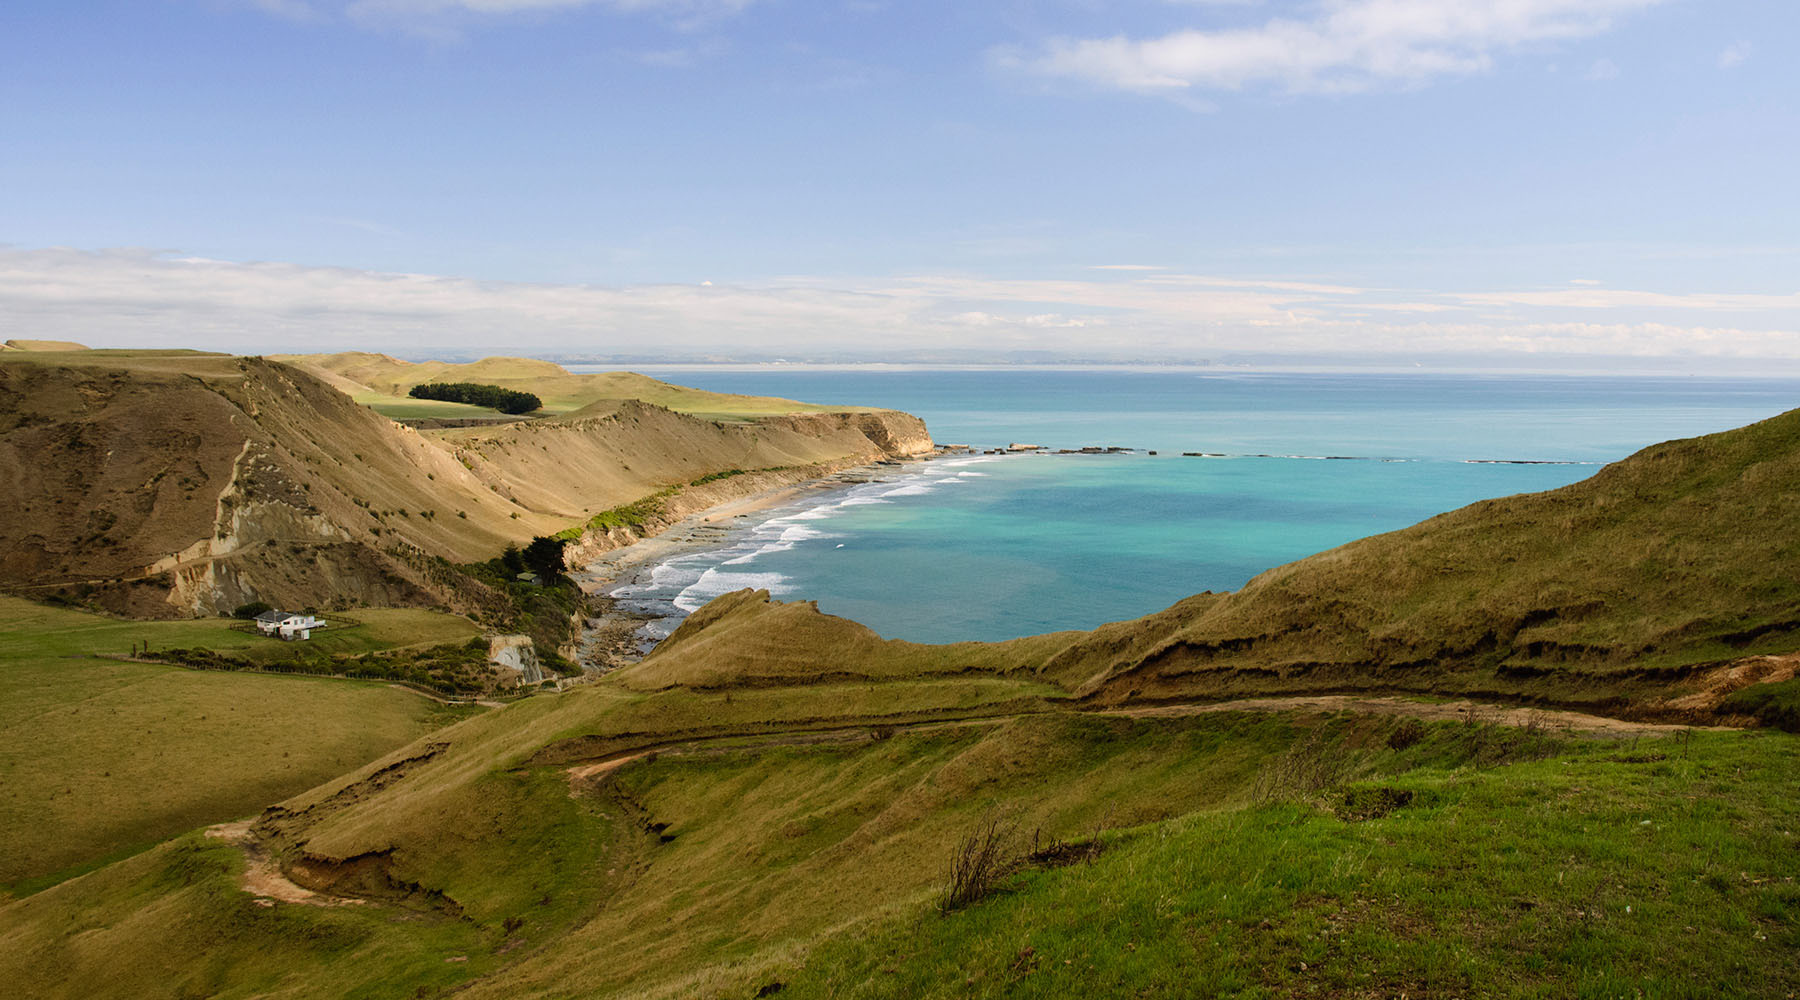 An Excursion to New Zealand's Cape Kidnappers